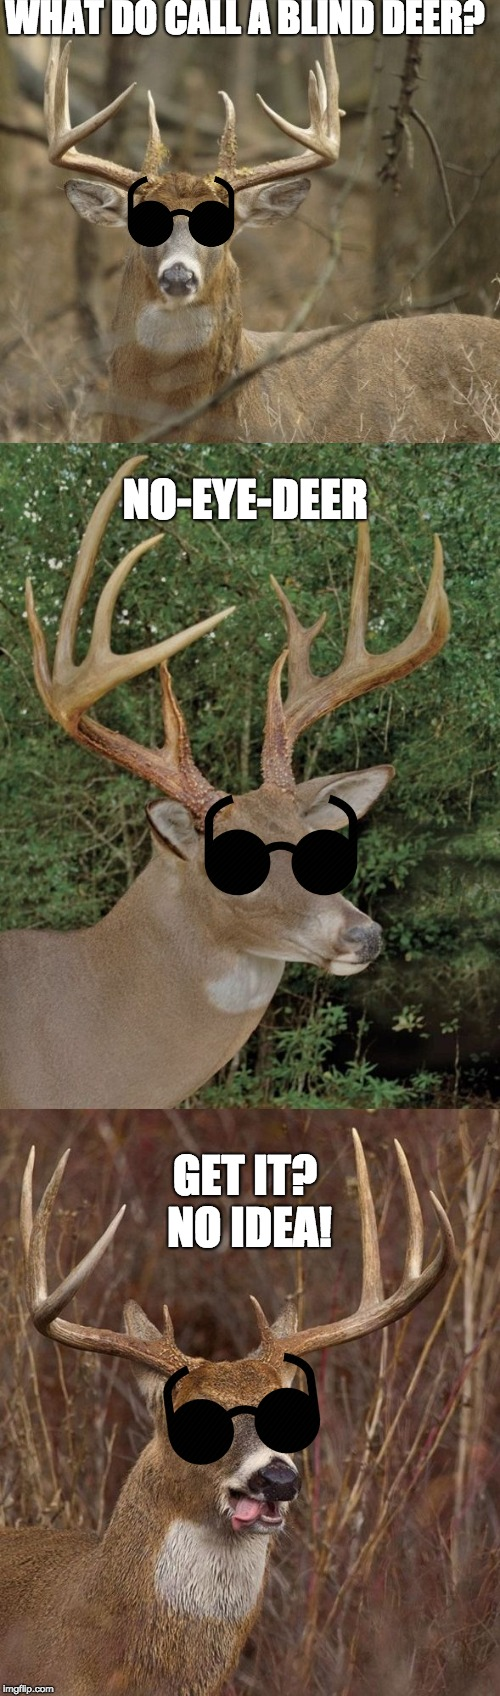 Bad Pun Buck | WHAT DO CALL A BLIND DEER? NO-EYE-DEER GET IT? NO IDEA! | image tagged in bad pun buck | made w/ Imgflip meme maker